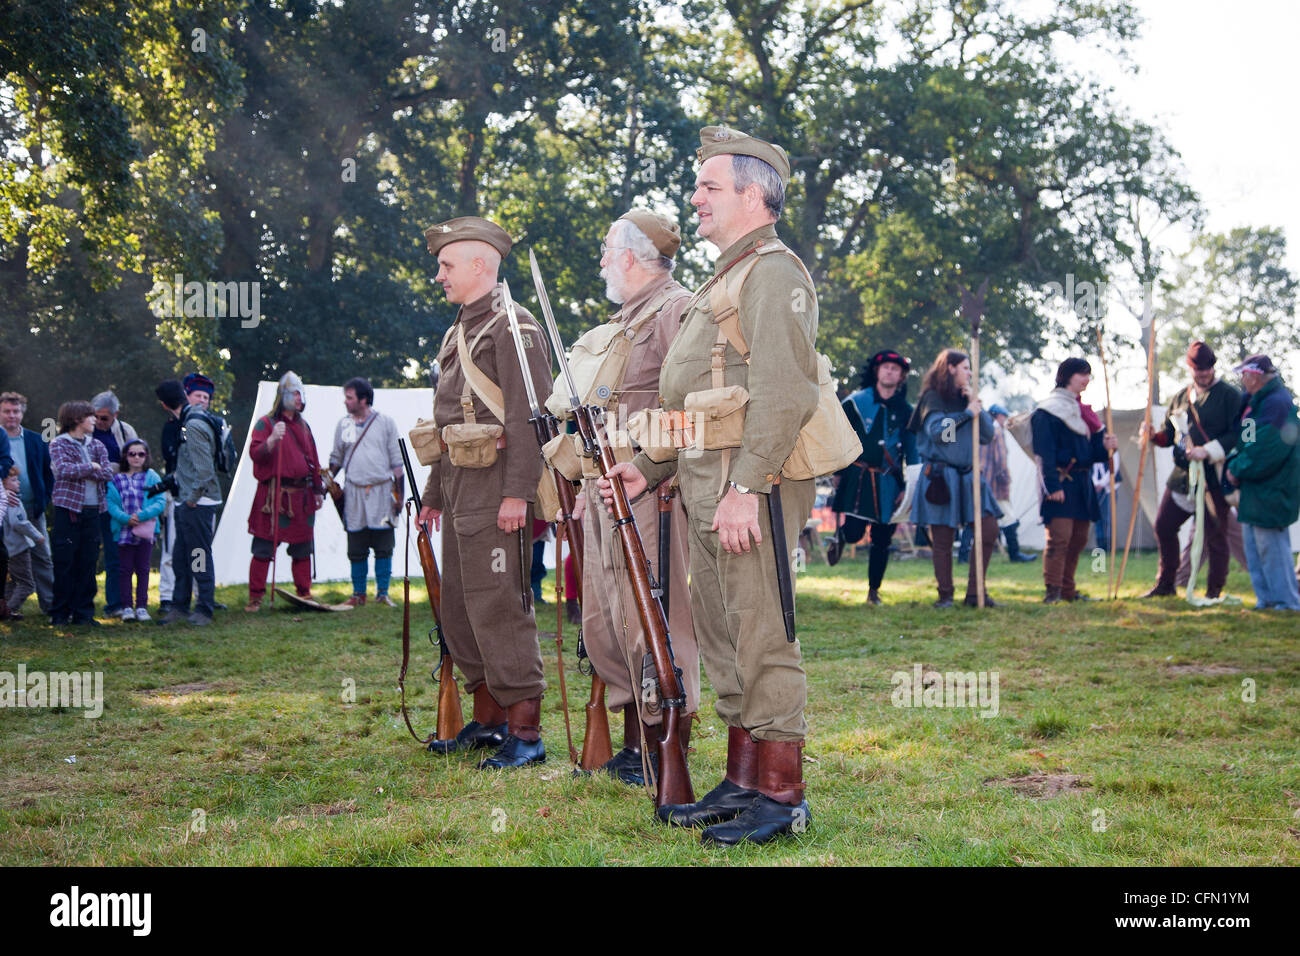 Re-enactment display of 2nd World War British army homeguard - Stock Image